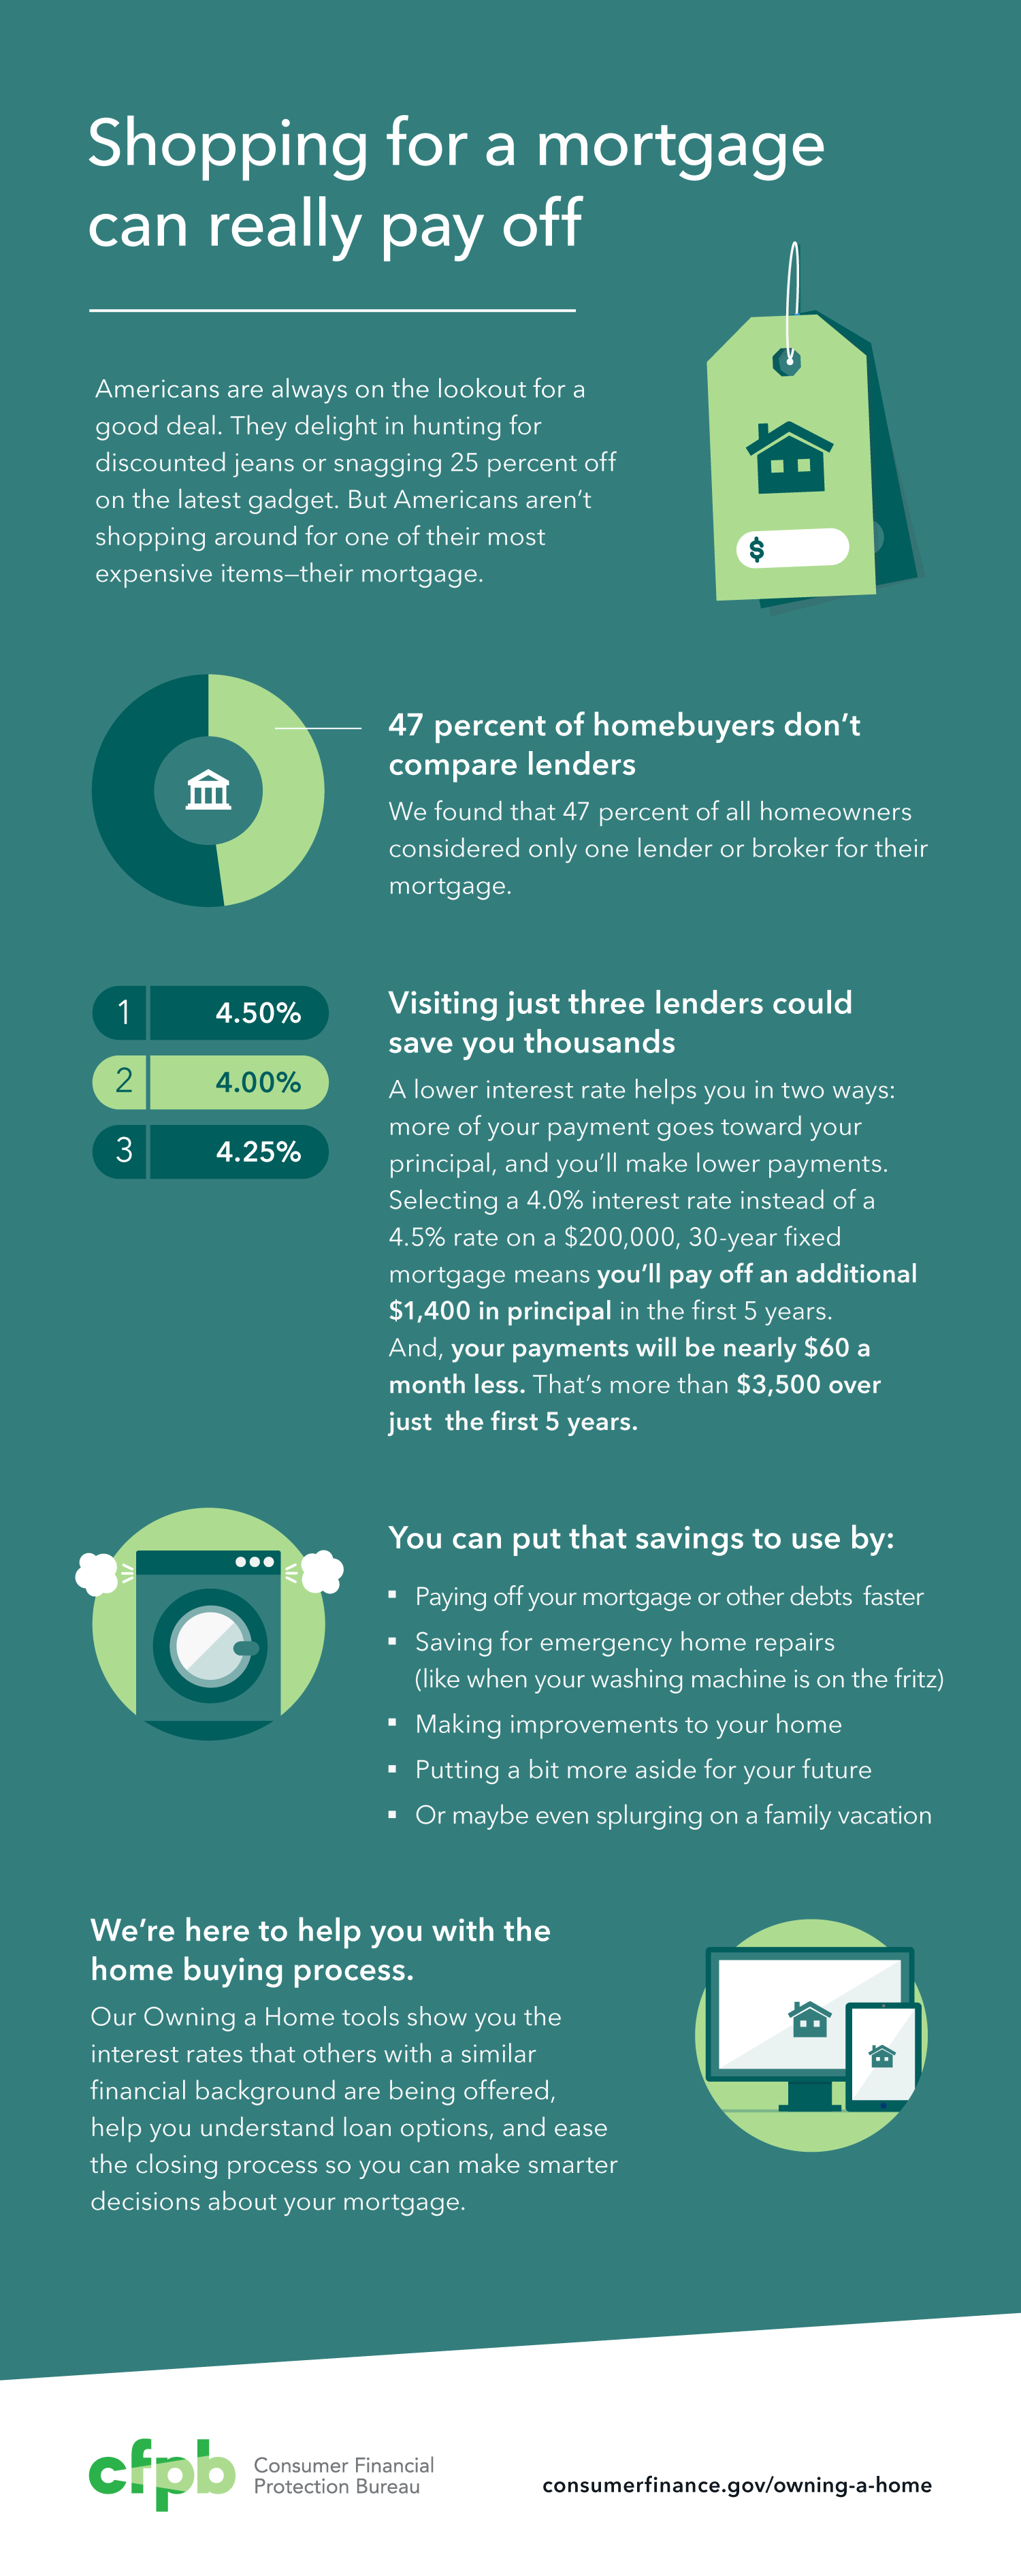 Infographic: shopping for a mortgage can really pay off. 47 percent of homebuyers don't compare lenders. Visiting just three lenders could save you thousands. You can put that savings to use. We're here to help you with the home buying process. Our Buying a House tools show you the interest rates that others with a similar financial background are being offered, help you understand loan options, and ease the closing process so you can make smarter decisions about your mortgage. Visit http://consumerfinance.gov/owning-a-home